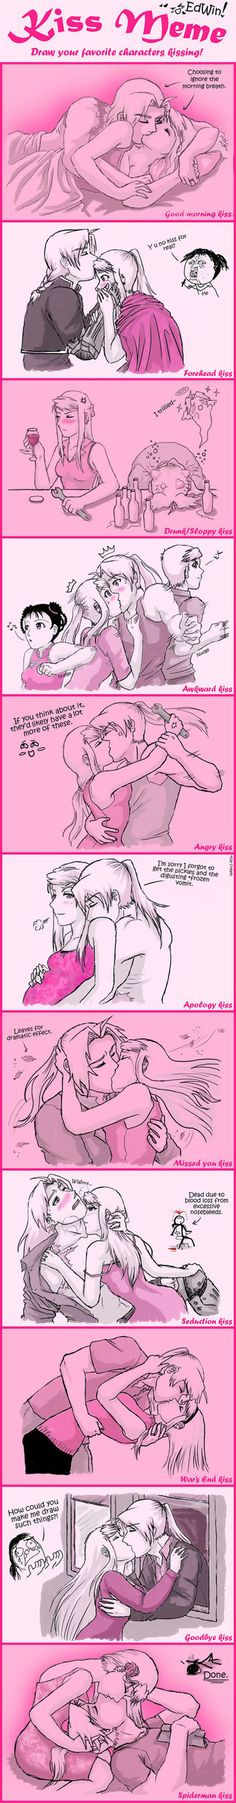 FMA- Kiss Meme by amburger91<<<Really loved the awkward kiss lol! Al and May would! Hahaha!